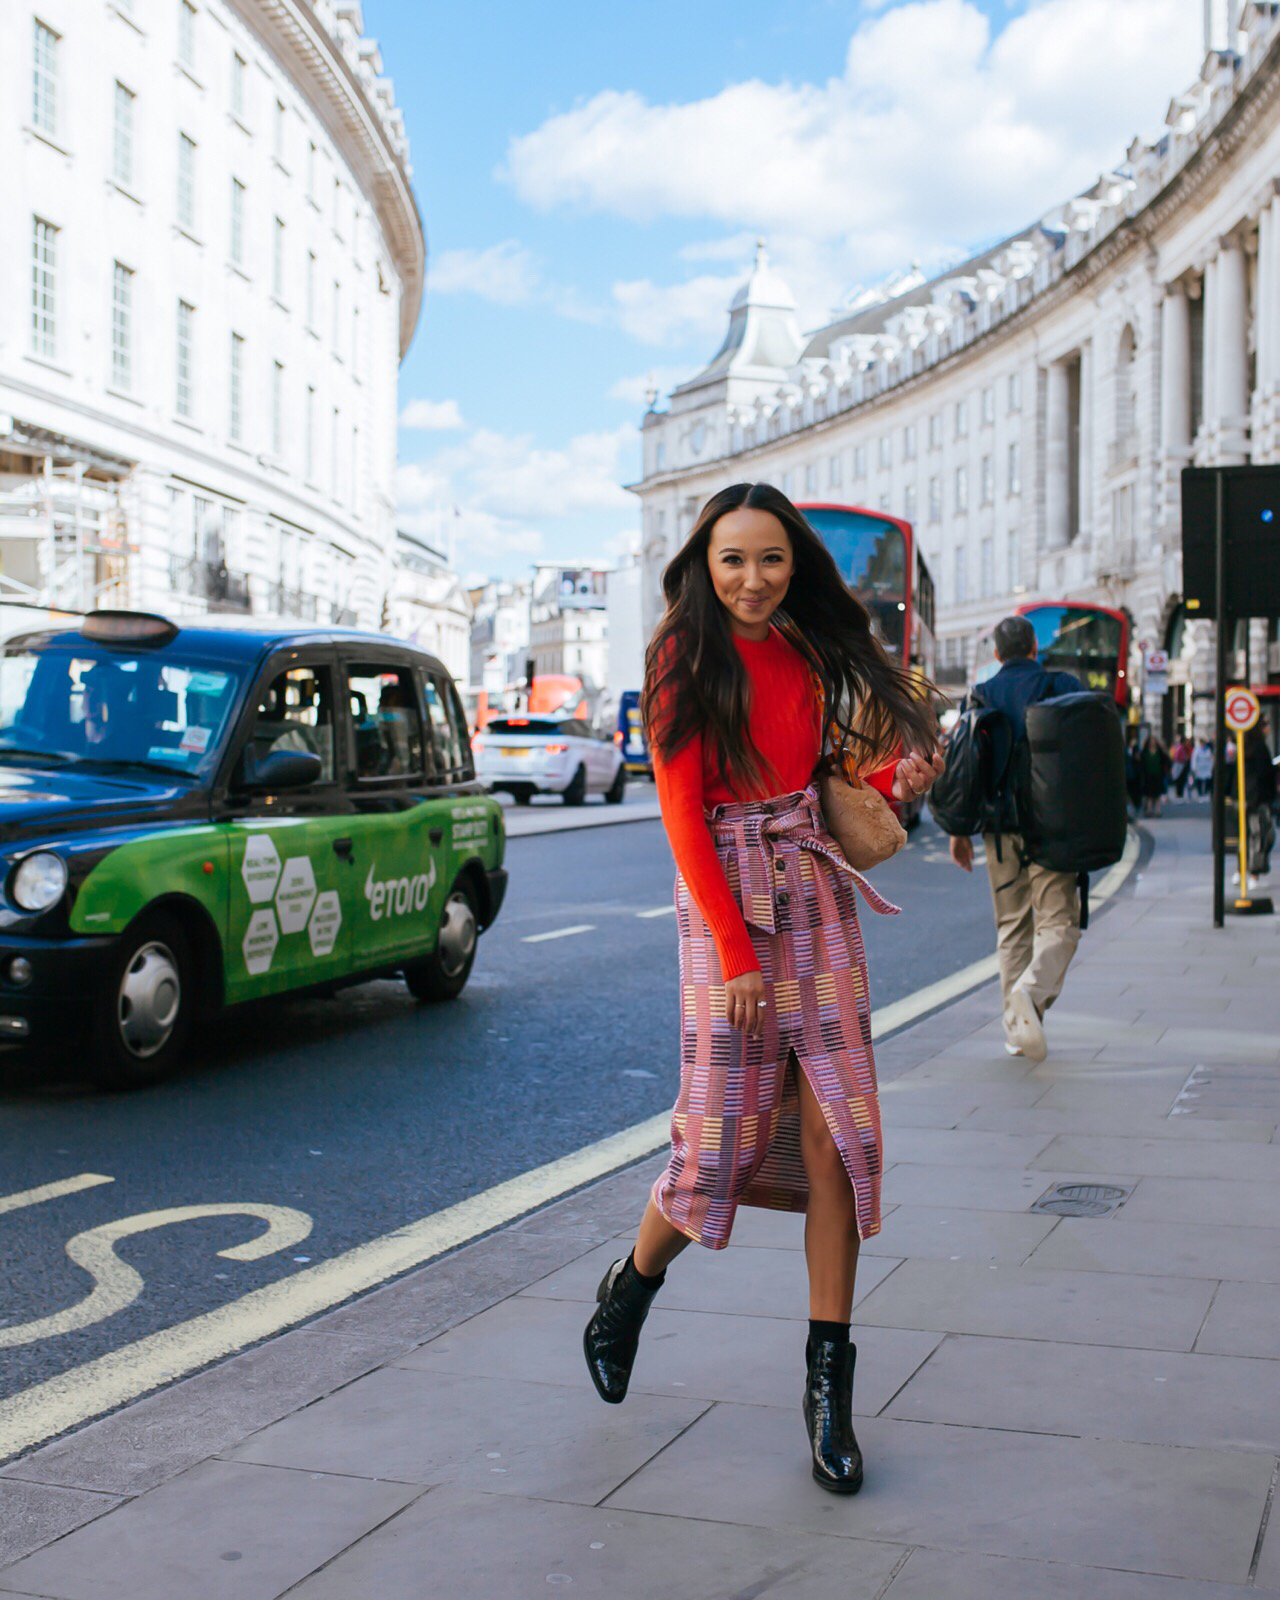 so here is my london-lon lon edition - Please note that I don't include any touristy attractions as I in fact avoid all when in London. This is my guide, with regards to what I do whilst in the city.